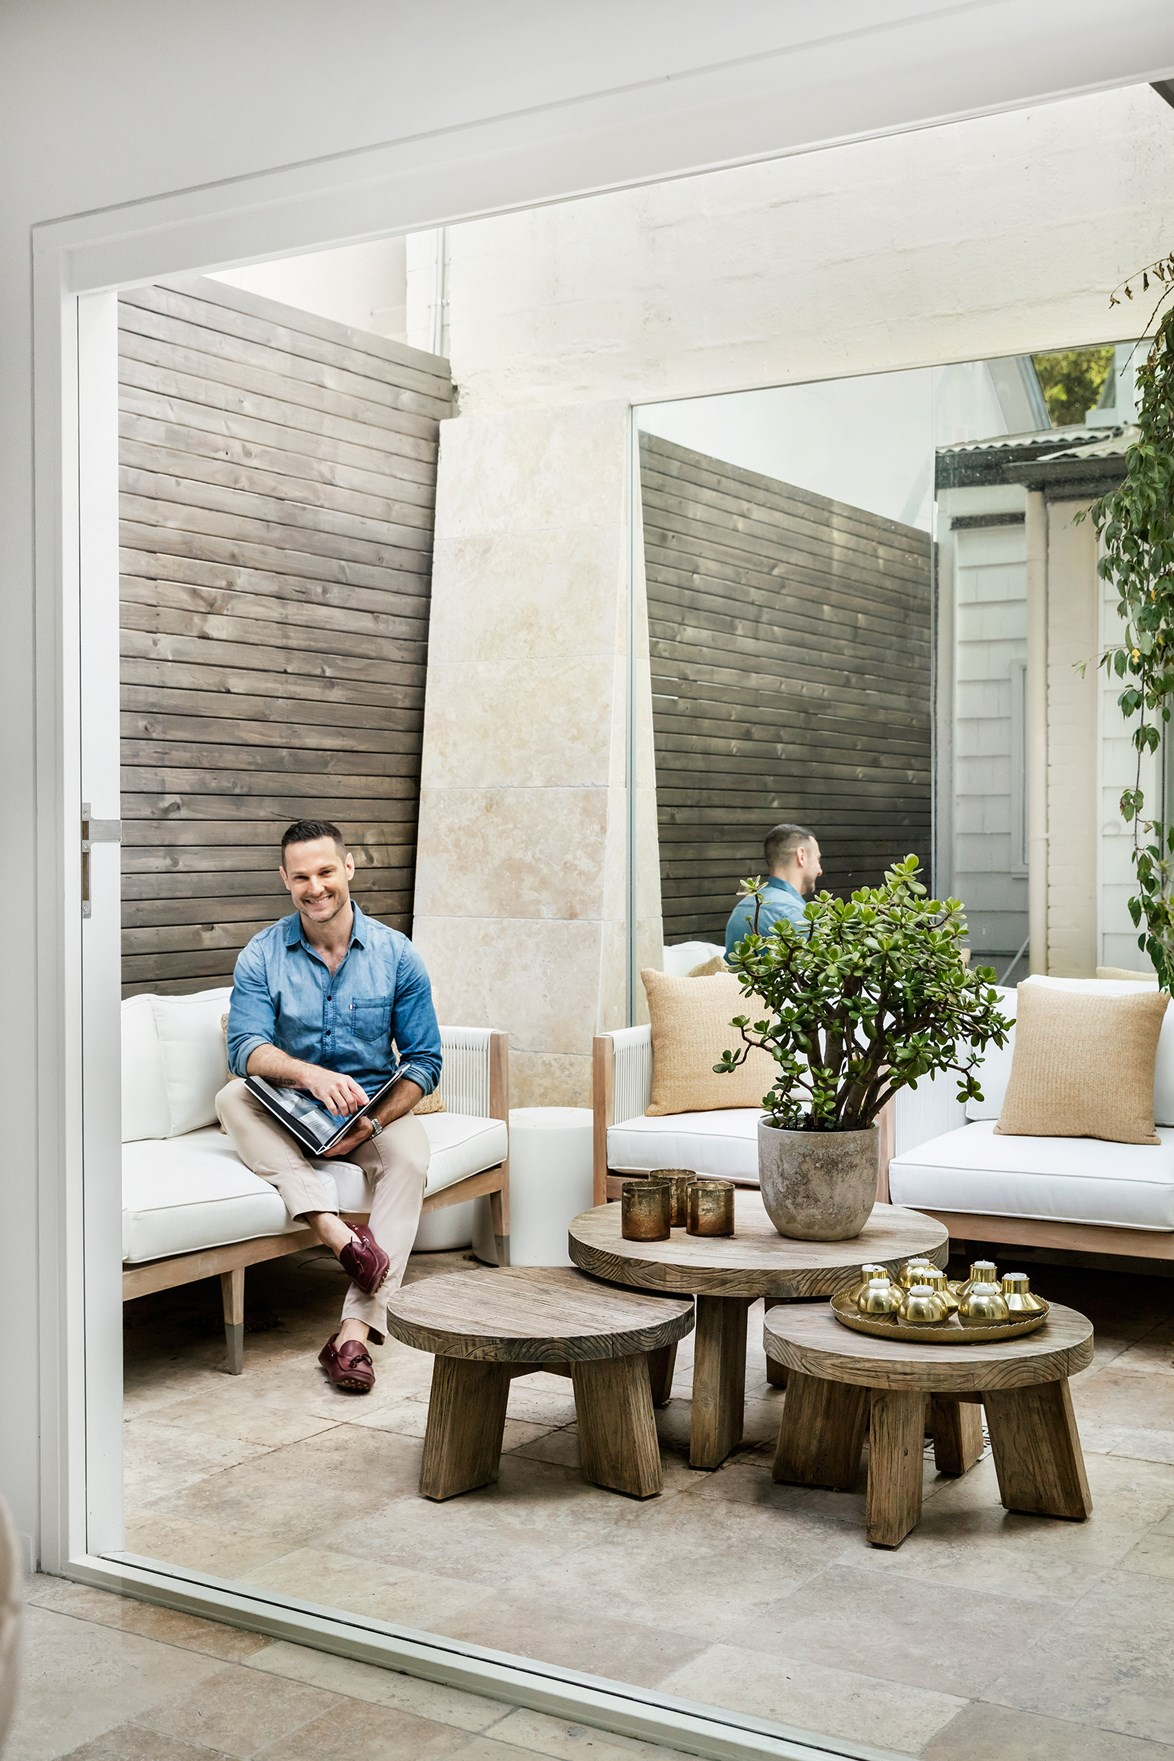 "Interior designer Darren Palmer added an internal courtyard to his [inner-city home](https://www.homestolove.com.au/darren-palmers-contemporary-classic-family-home-2993|target=""_blank"") to create a light and airy sanctuary that connects to the outdoors. The courtyard is now a place that Darren finds himself drawn to. ""It was a no-go zone before, but now it begs you to lie on the sofa and relax,"" he says."